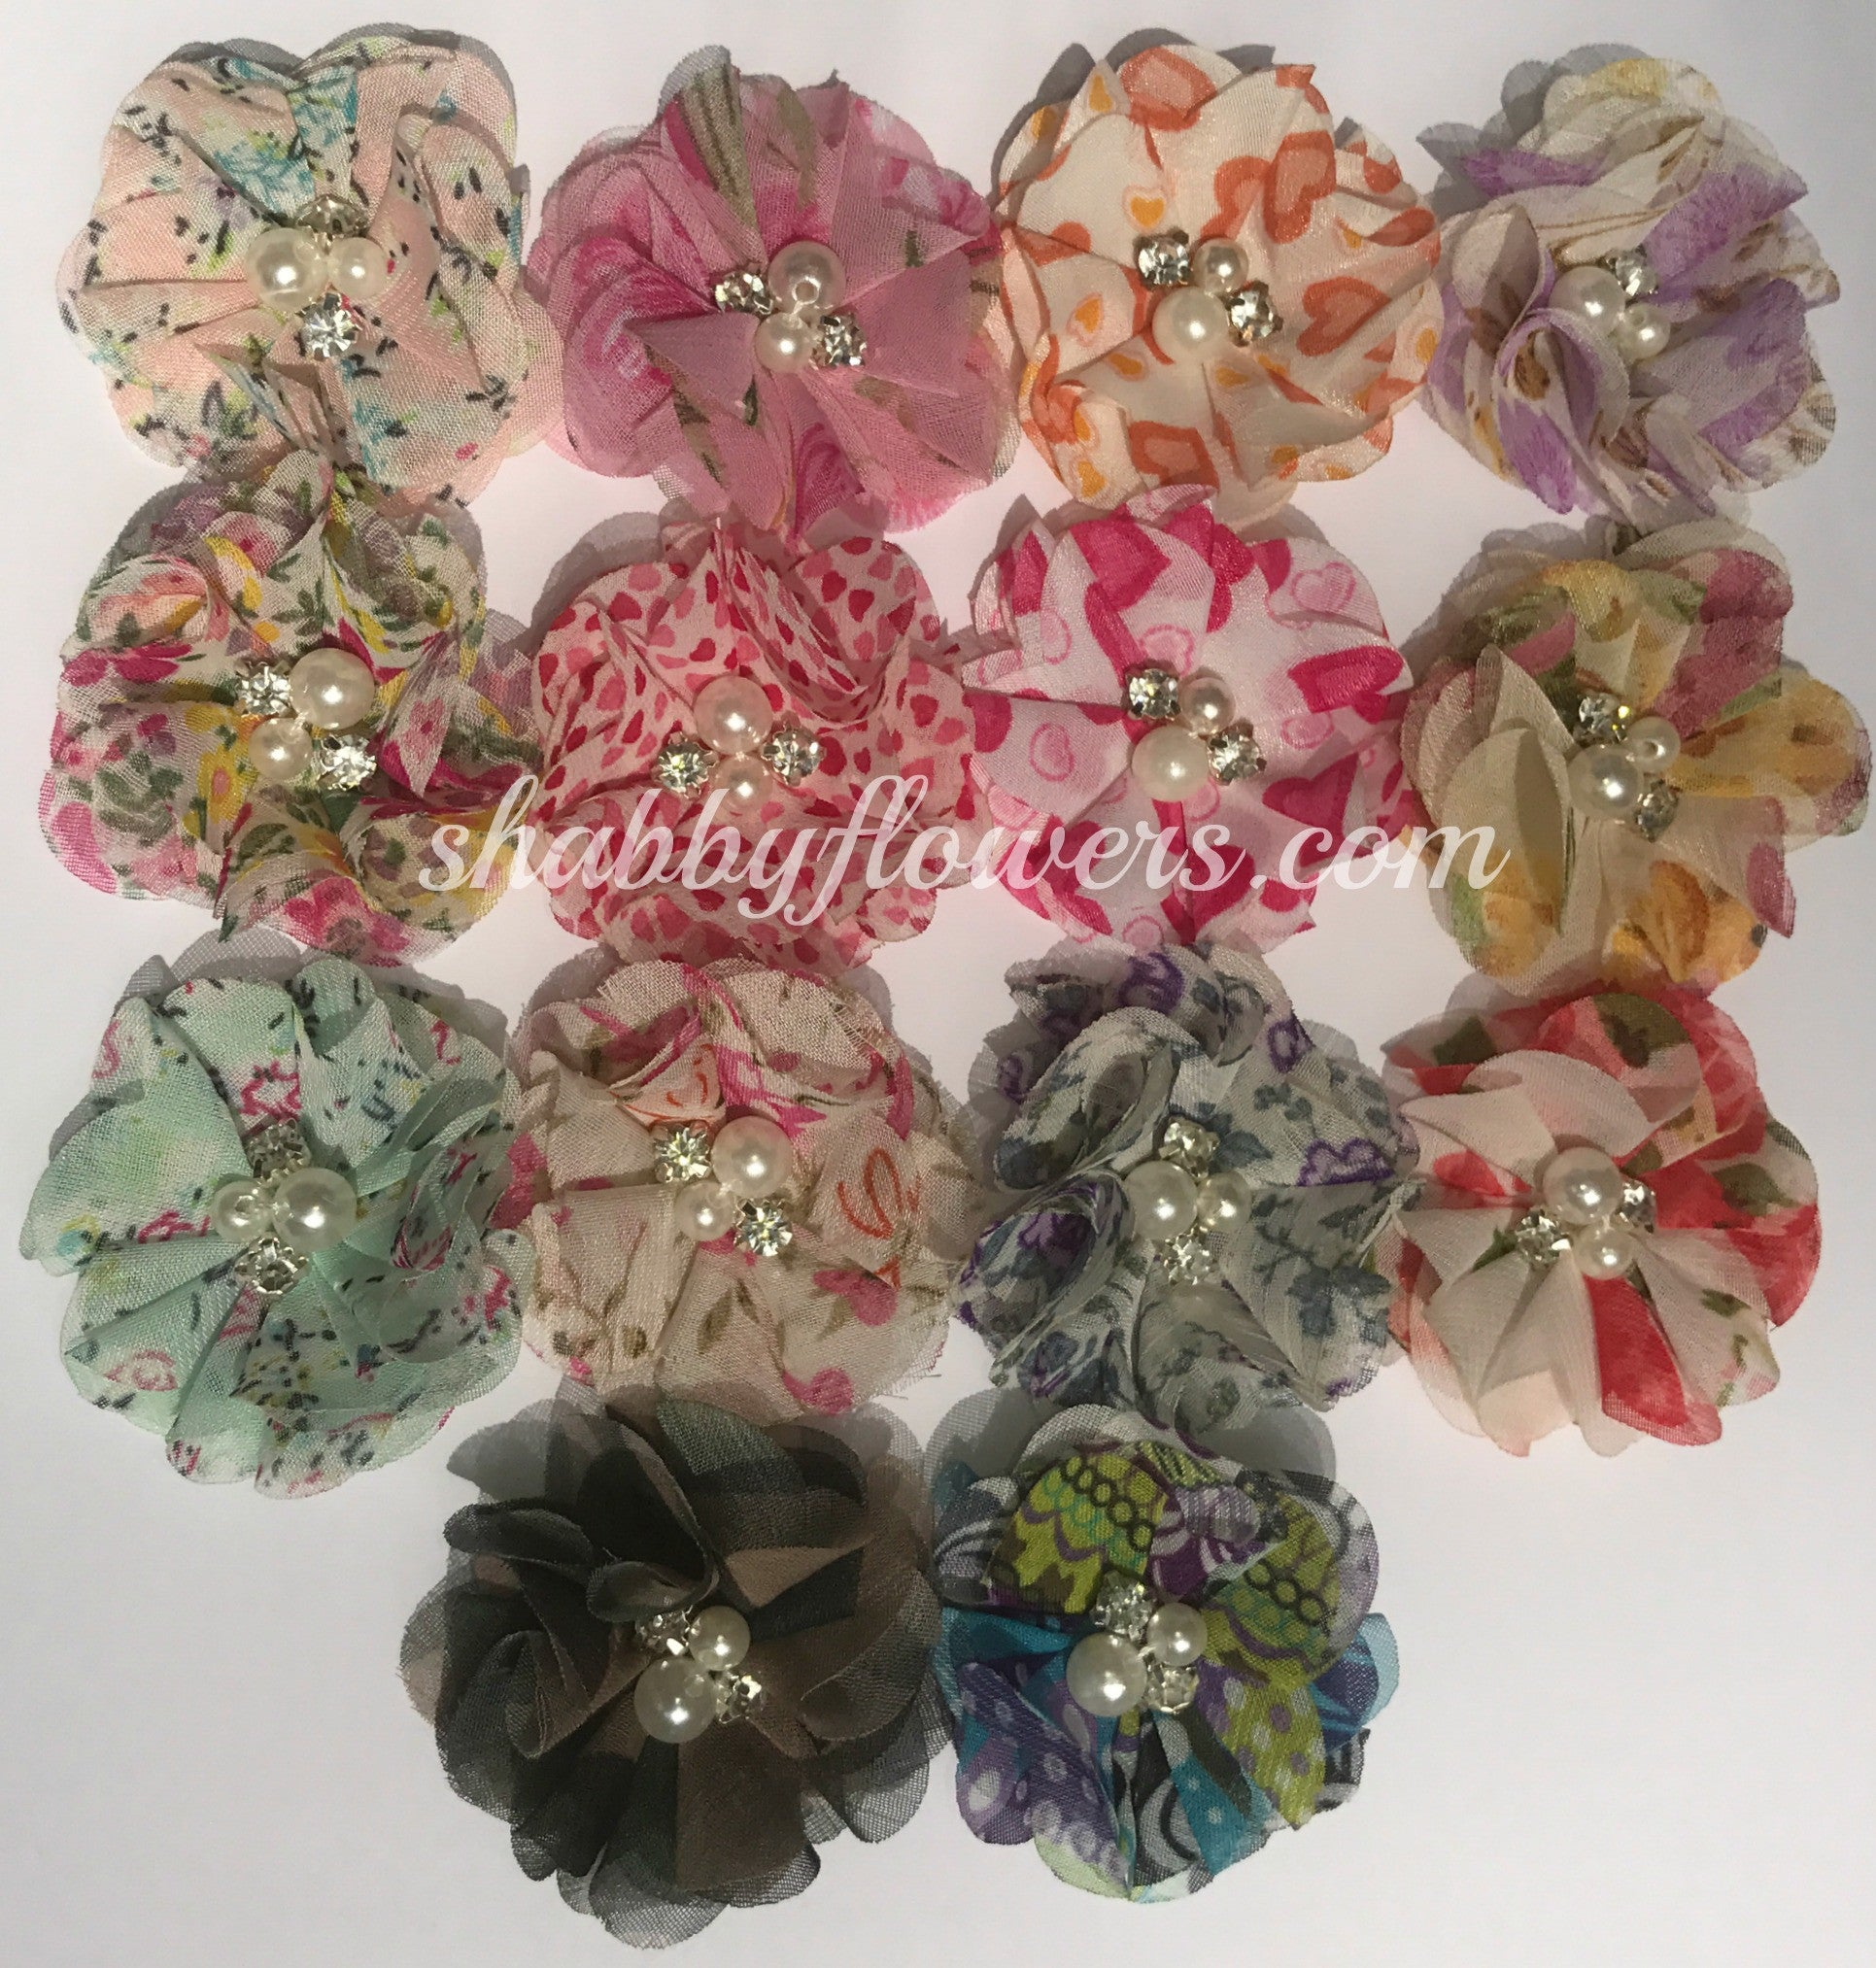 Pearl & Rhinestone Printed Flower - Grab Bag of 5 flowers - shabbyflowers.com